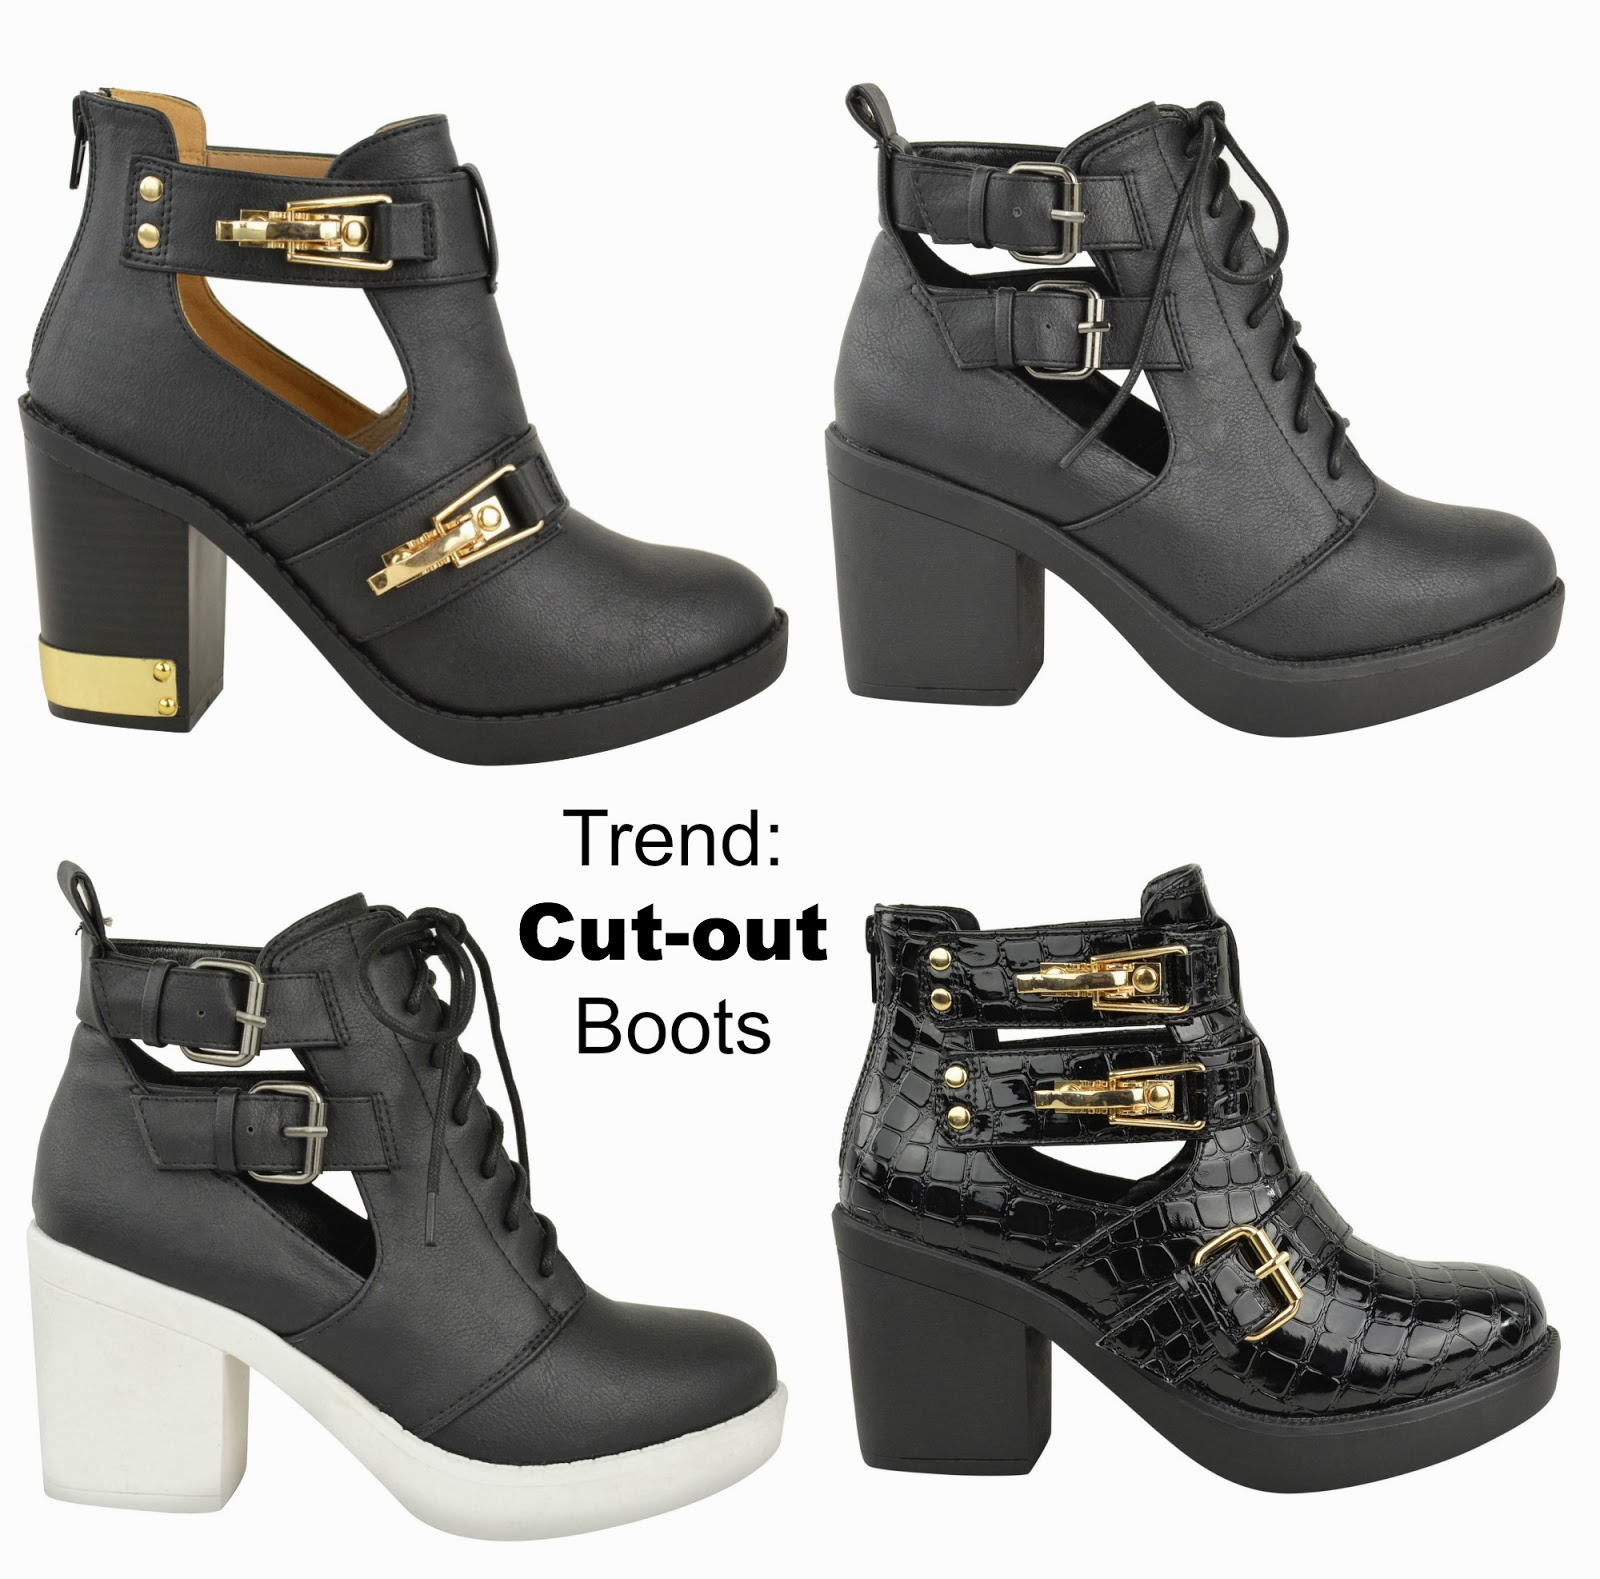 autumn winter trend cut out boots love wardrobe. Black Bedroom Furniture Sets. Home Design Ideas